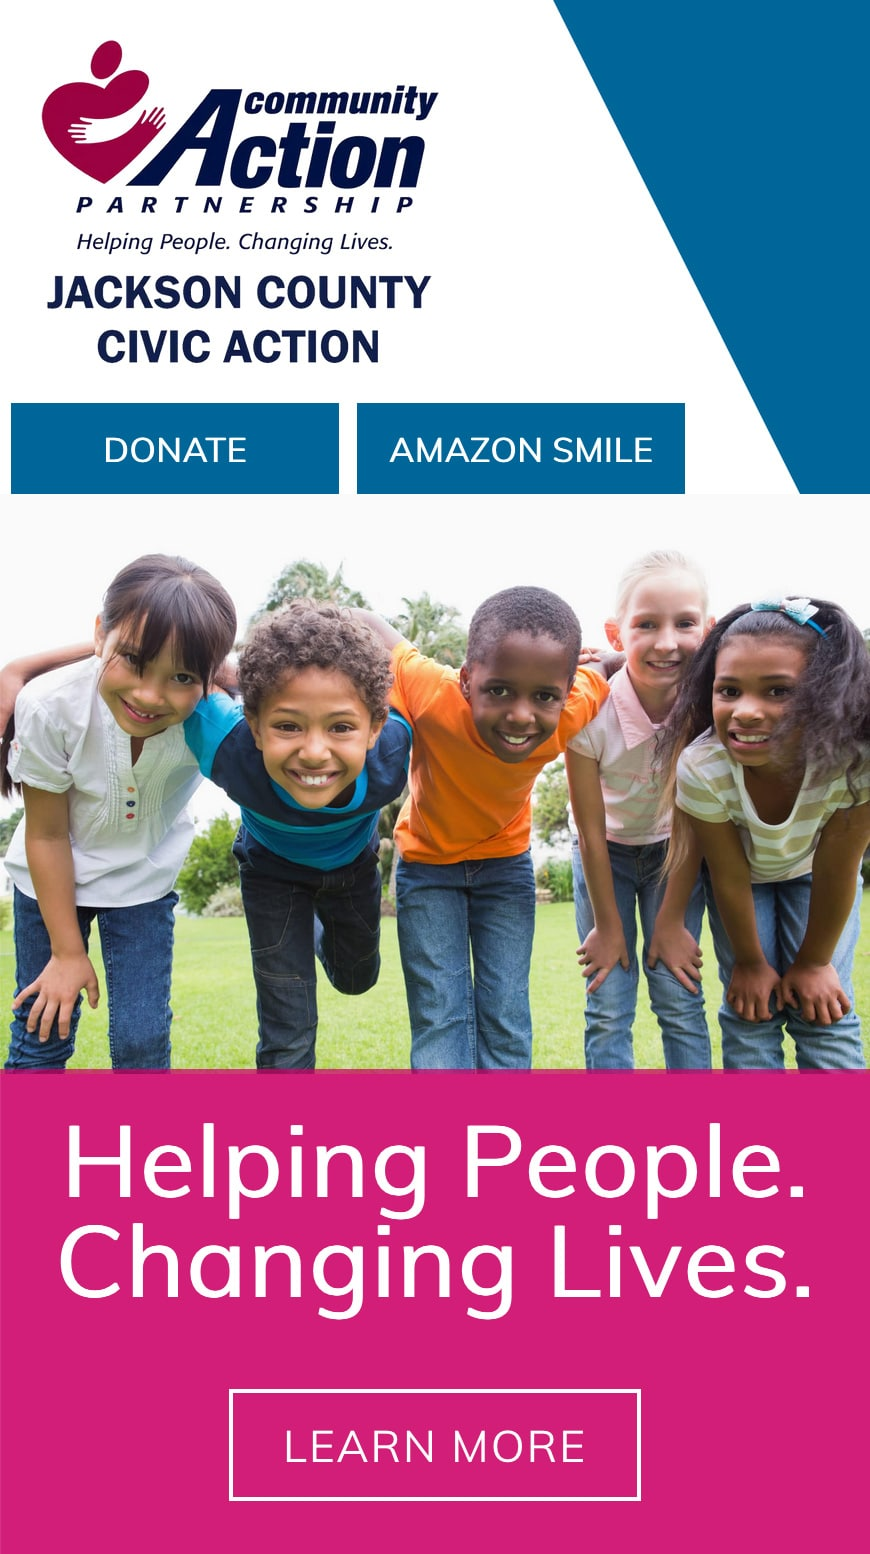 Community Action Partnership Homepage Mobile 1